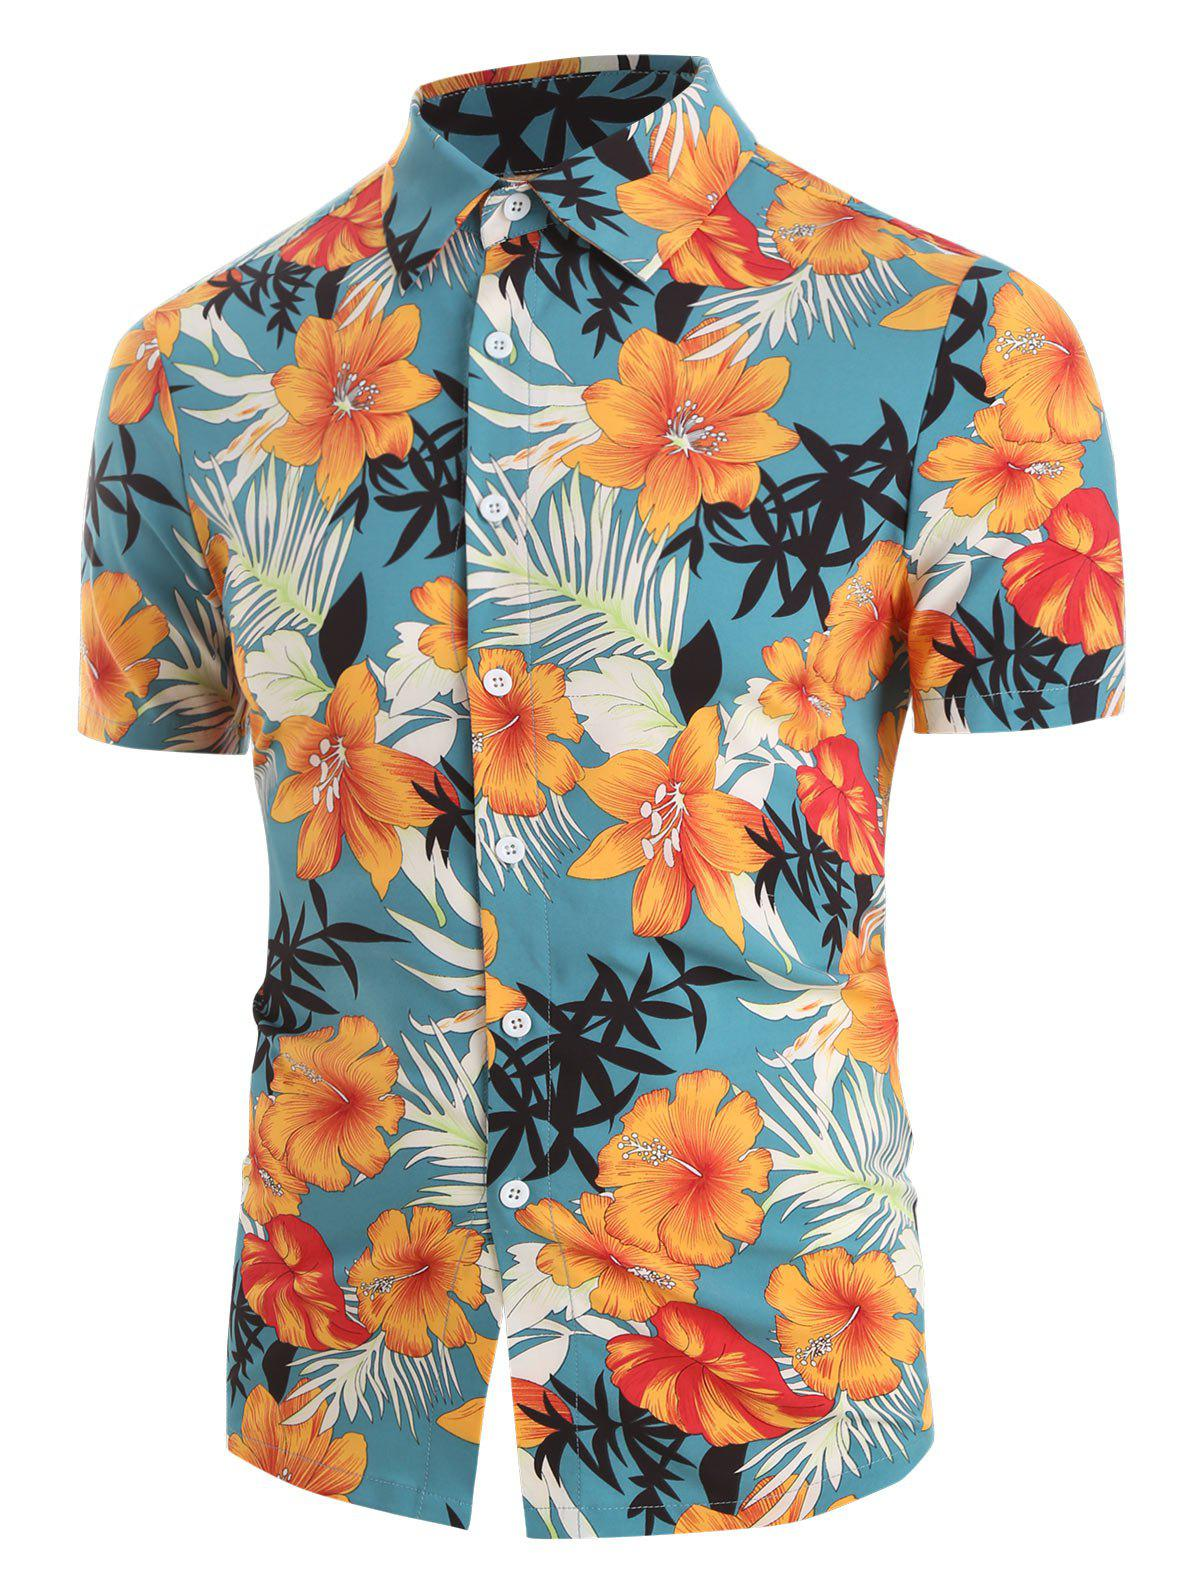 Unique Tropical Flower Print Button Up Short Sleeve Shirt